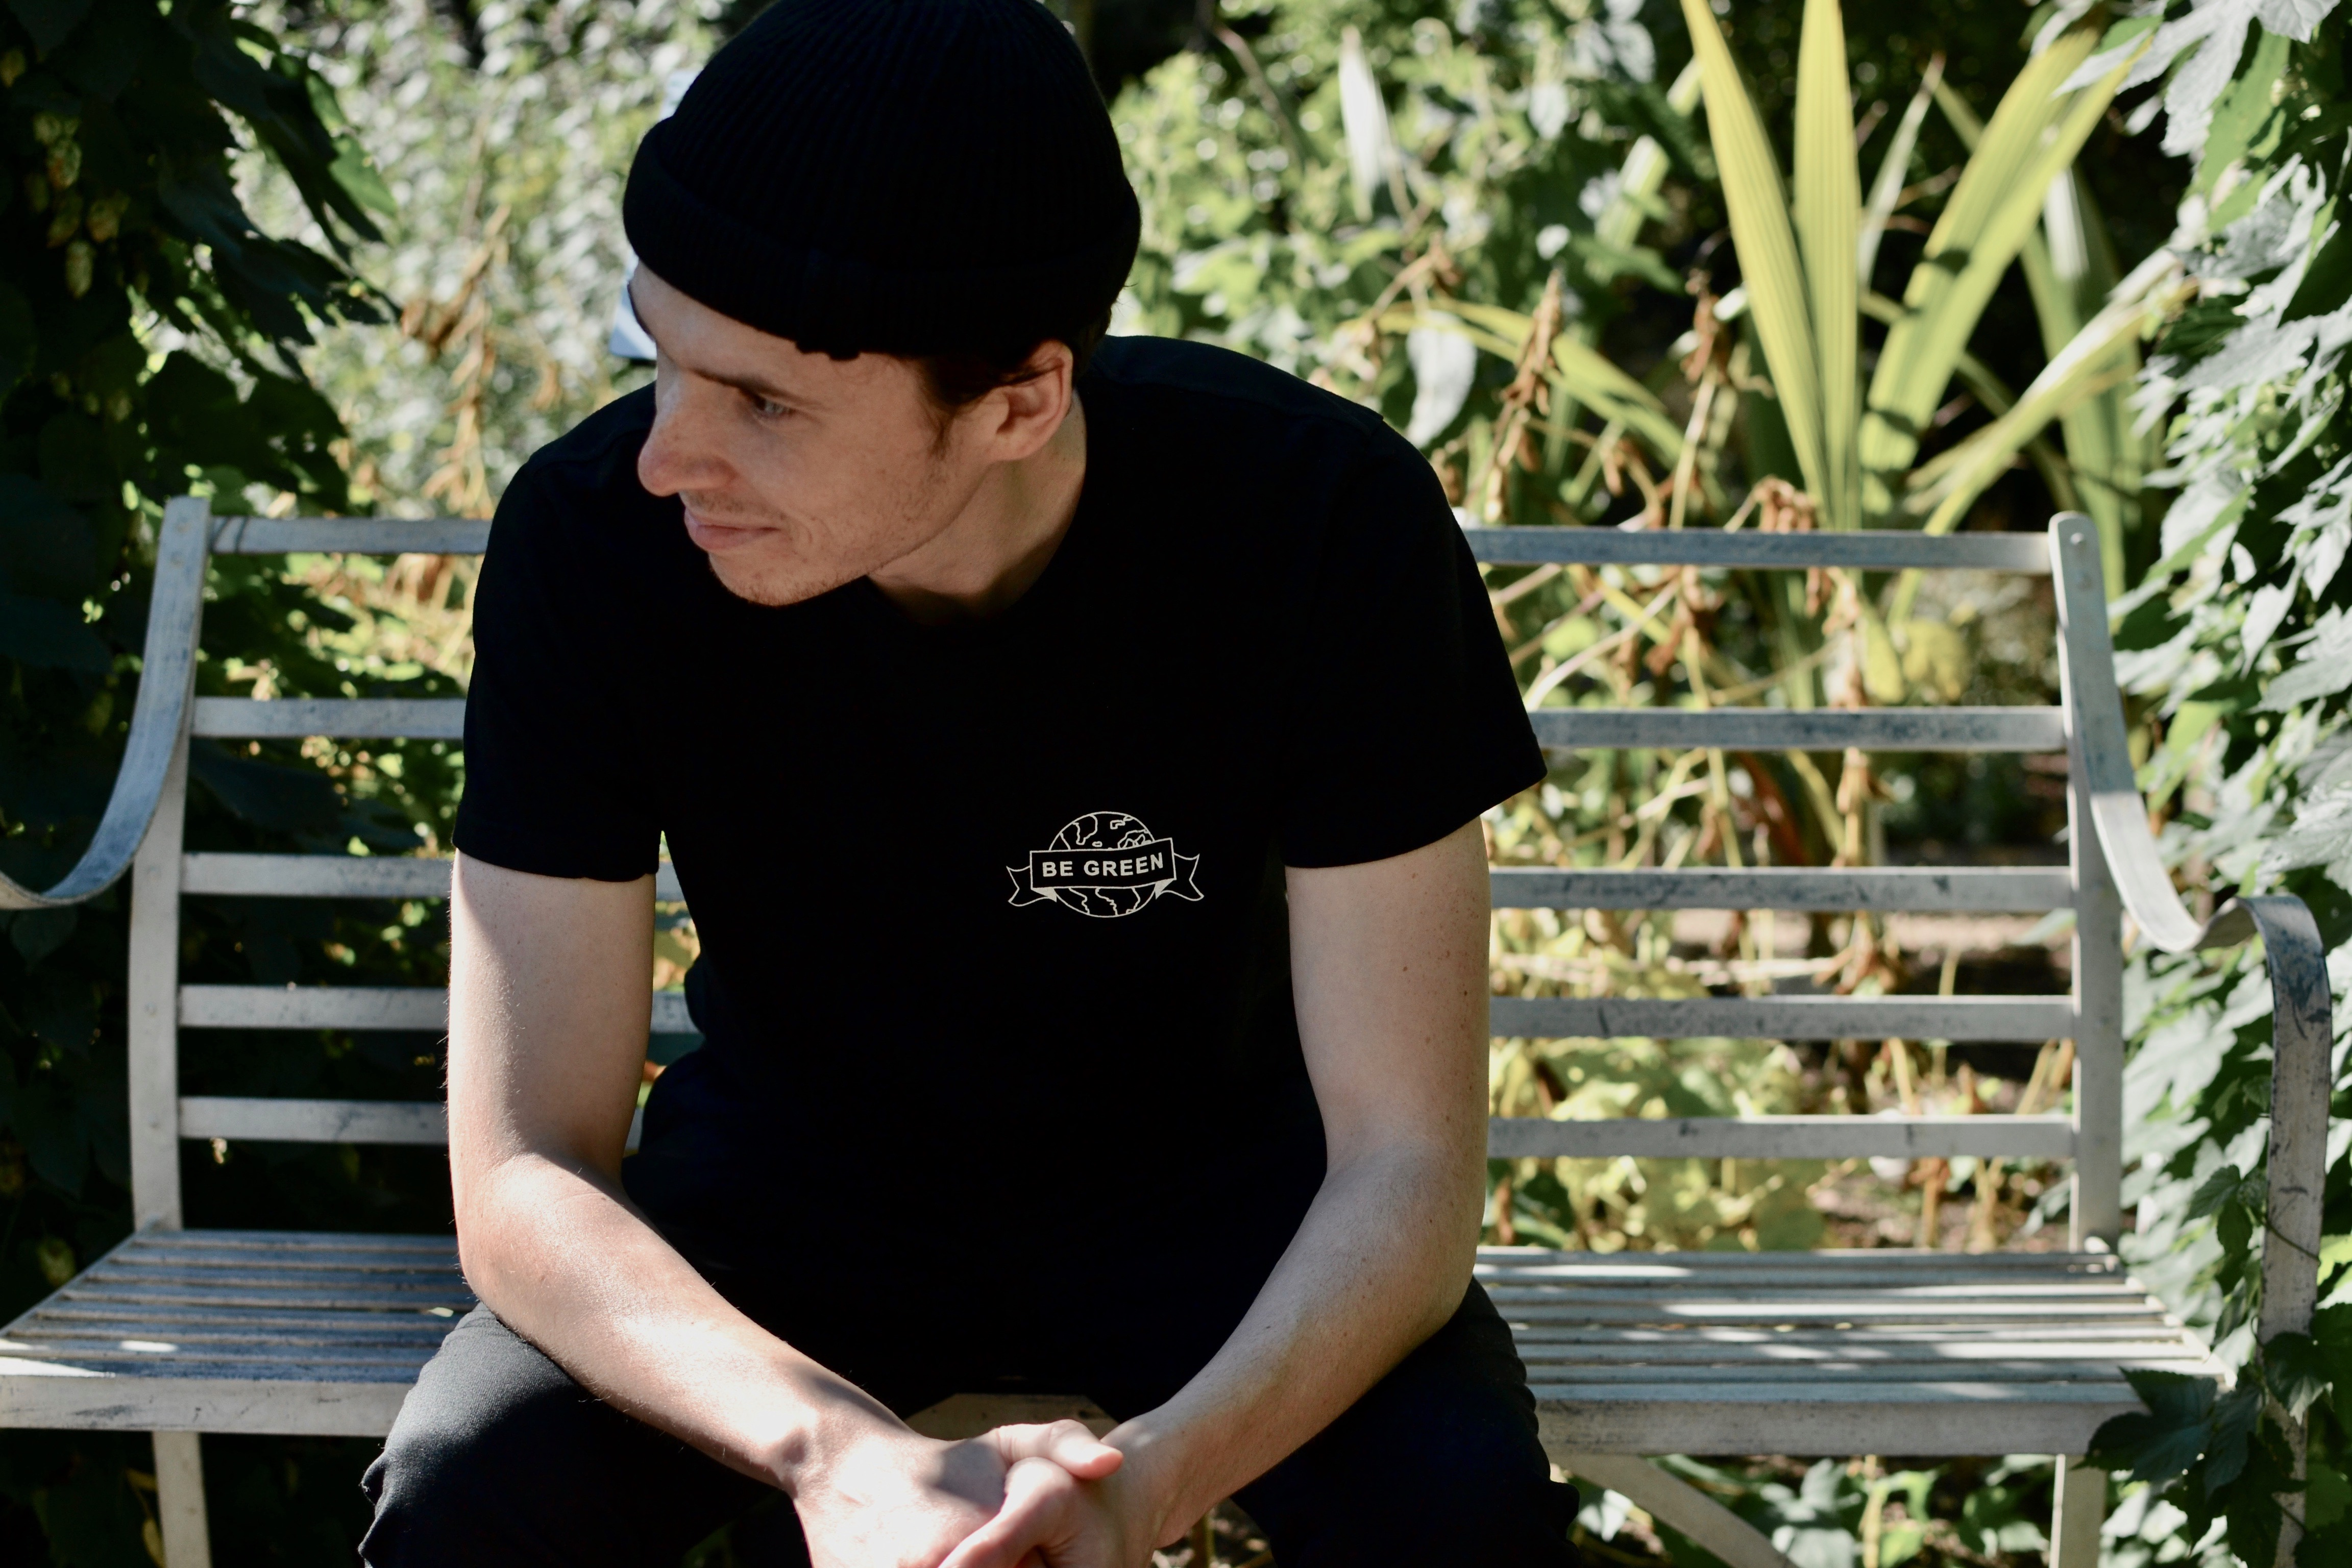 Meet The Founder Of BLANTPASED Vegan Streetwear